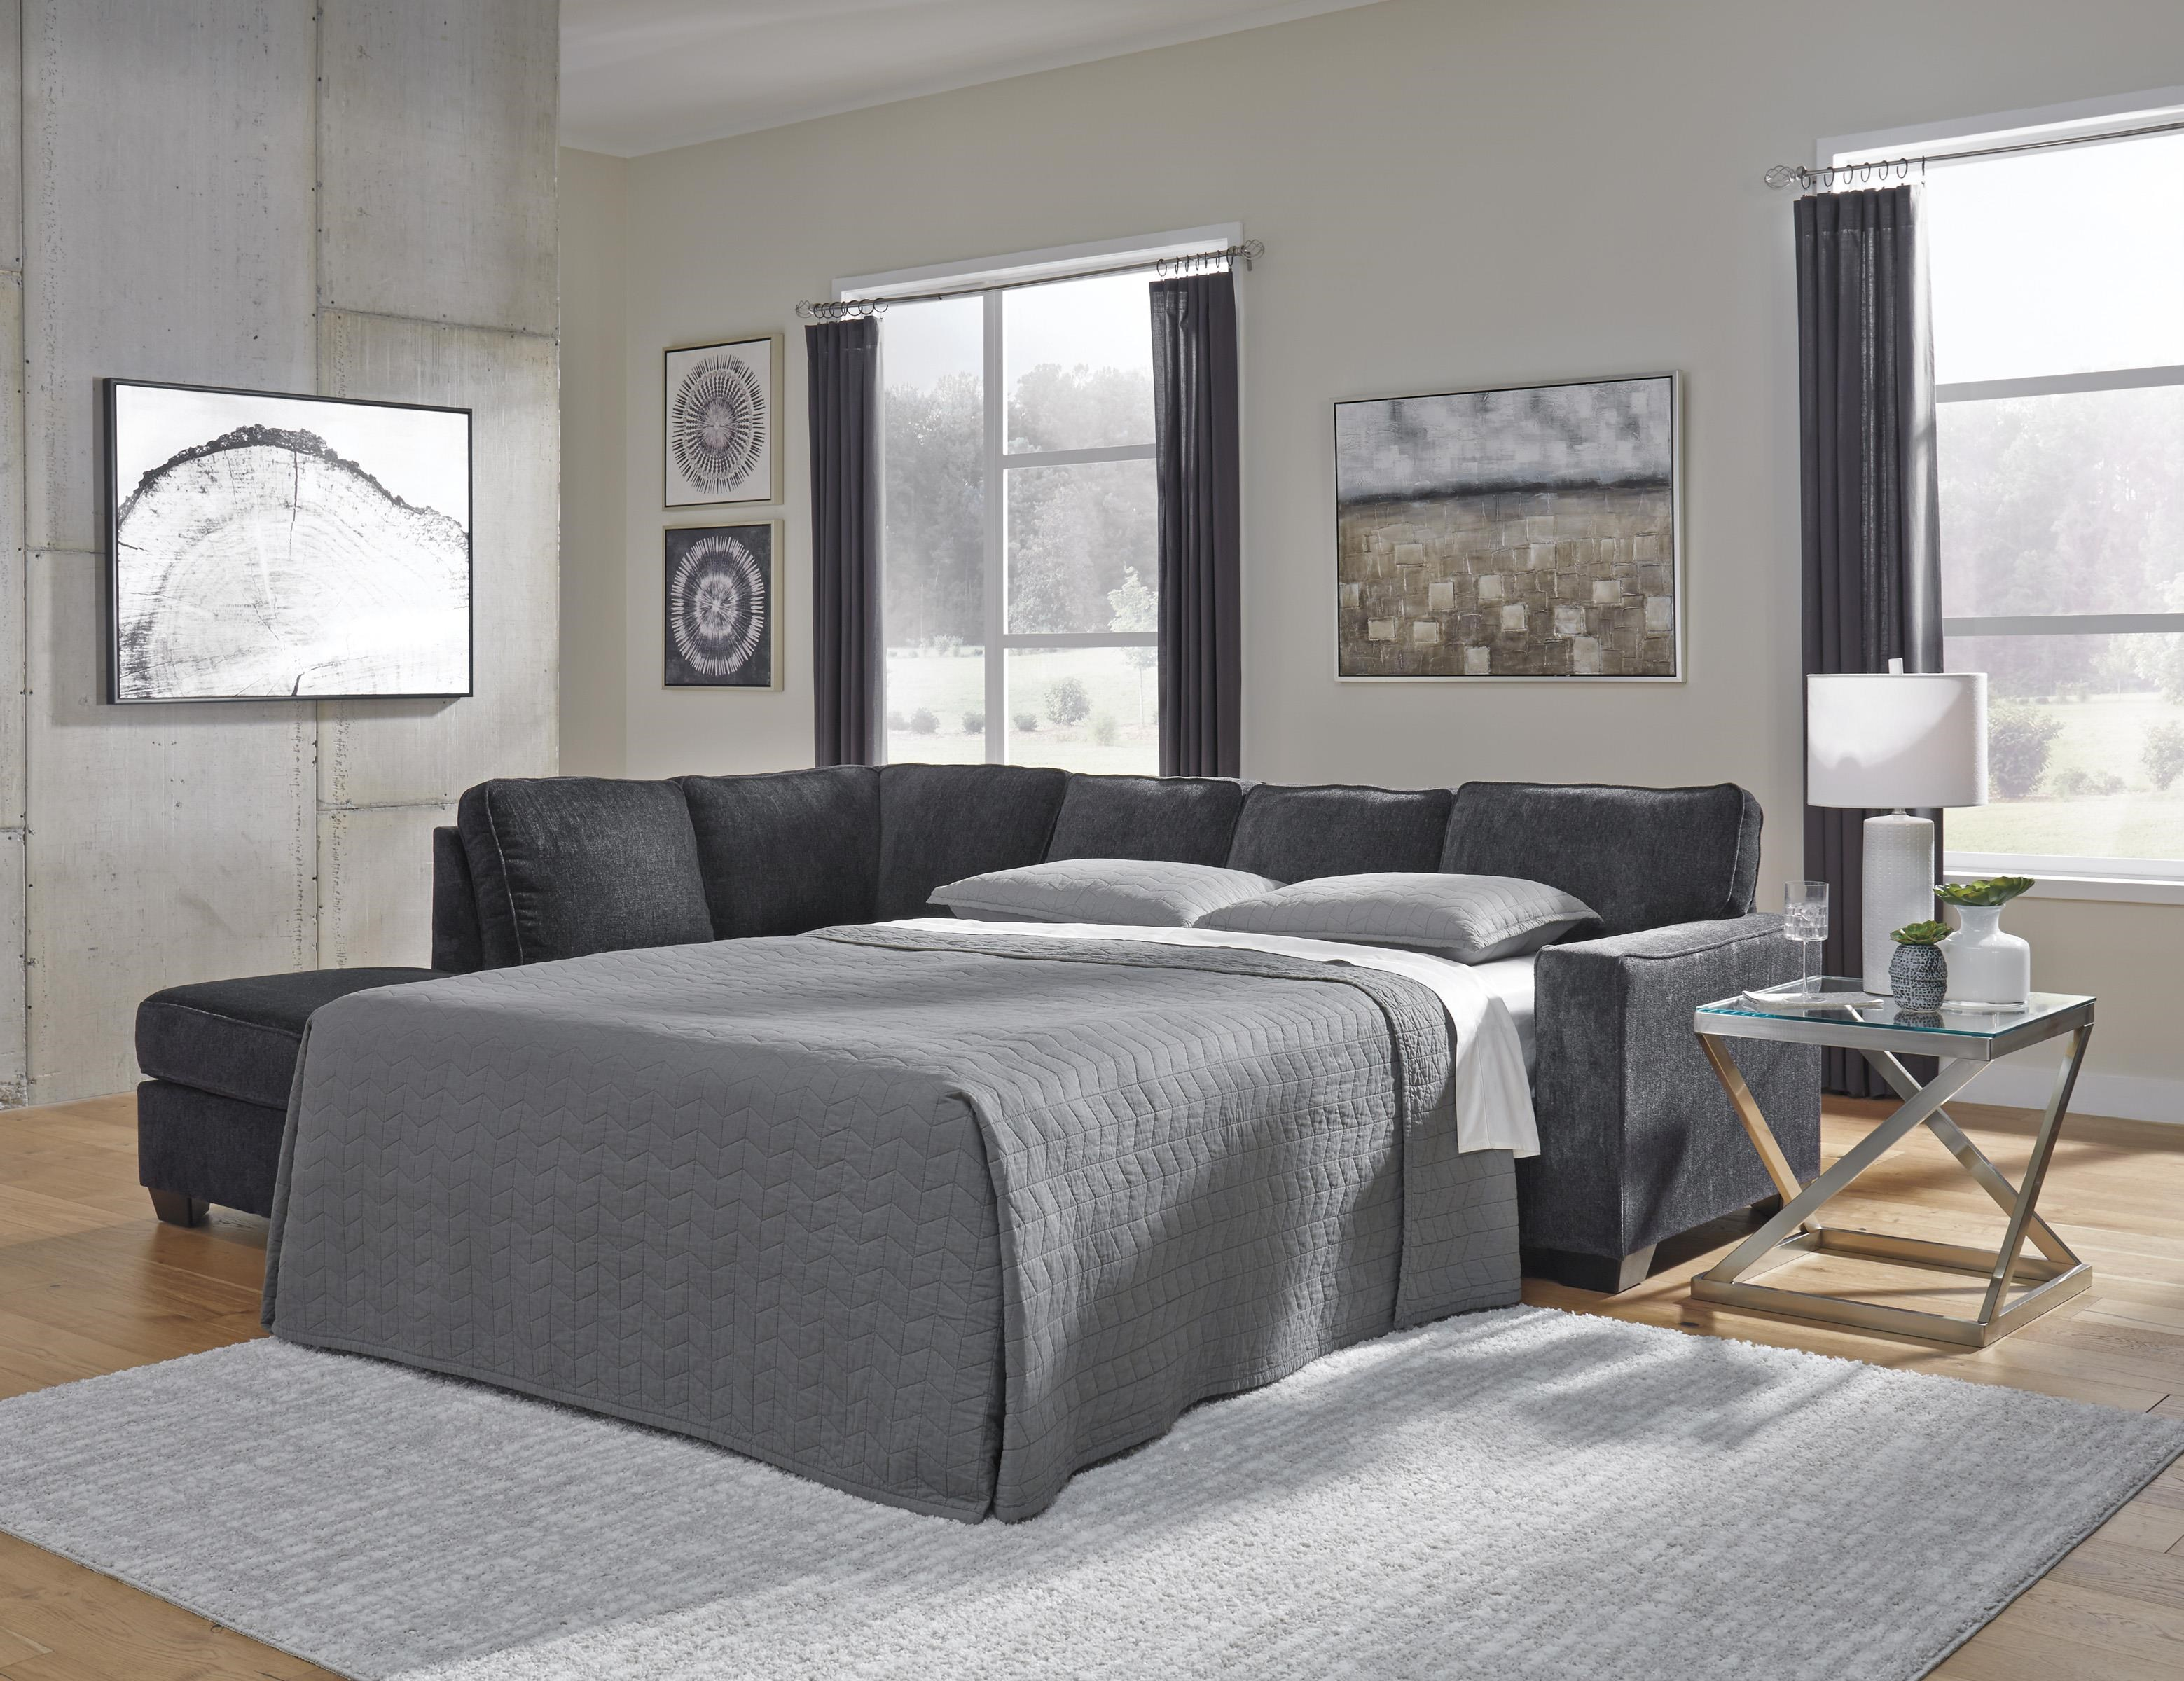 Altari 2 PC Sleeper Sectional and Chair Set by Signature Design by Ashley at Sam Levitz Furniture